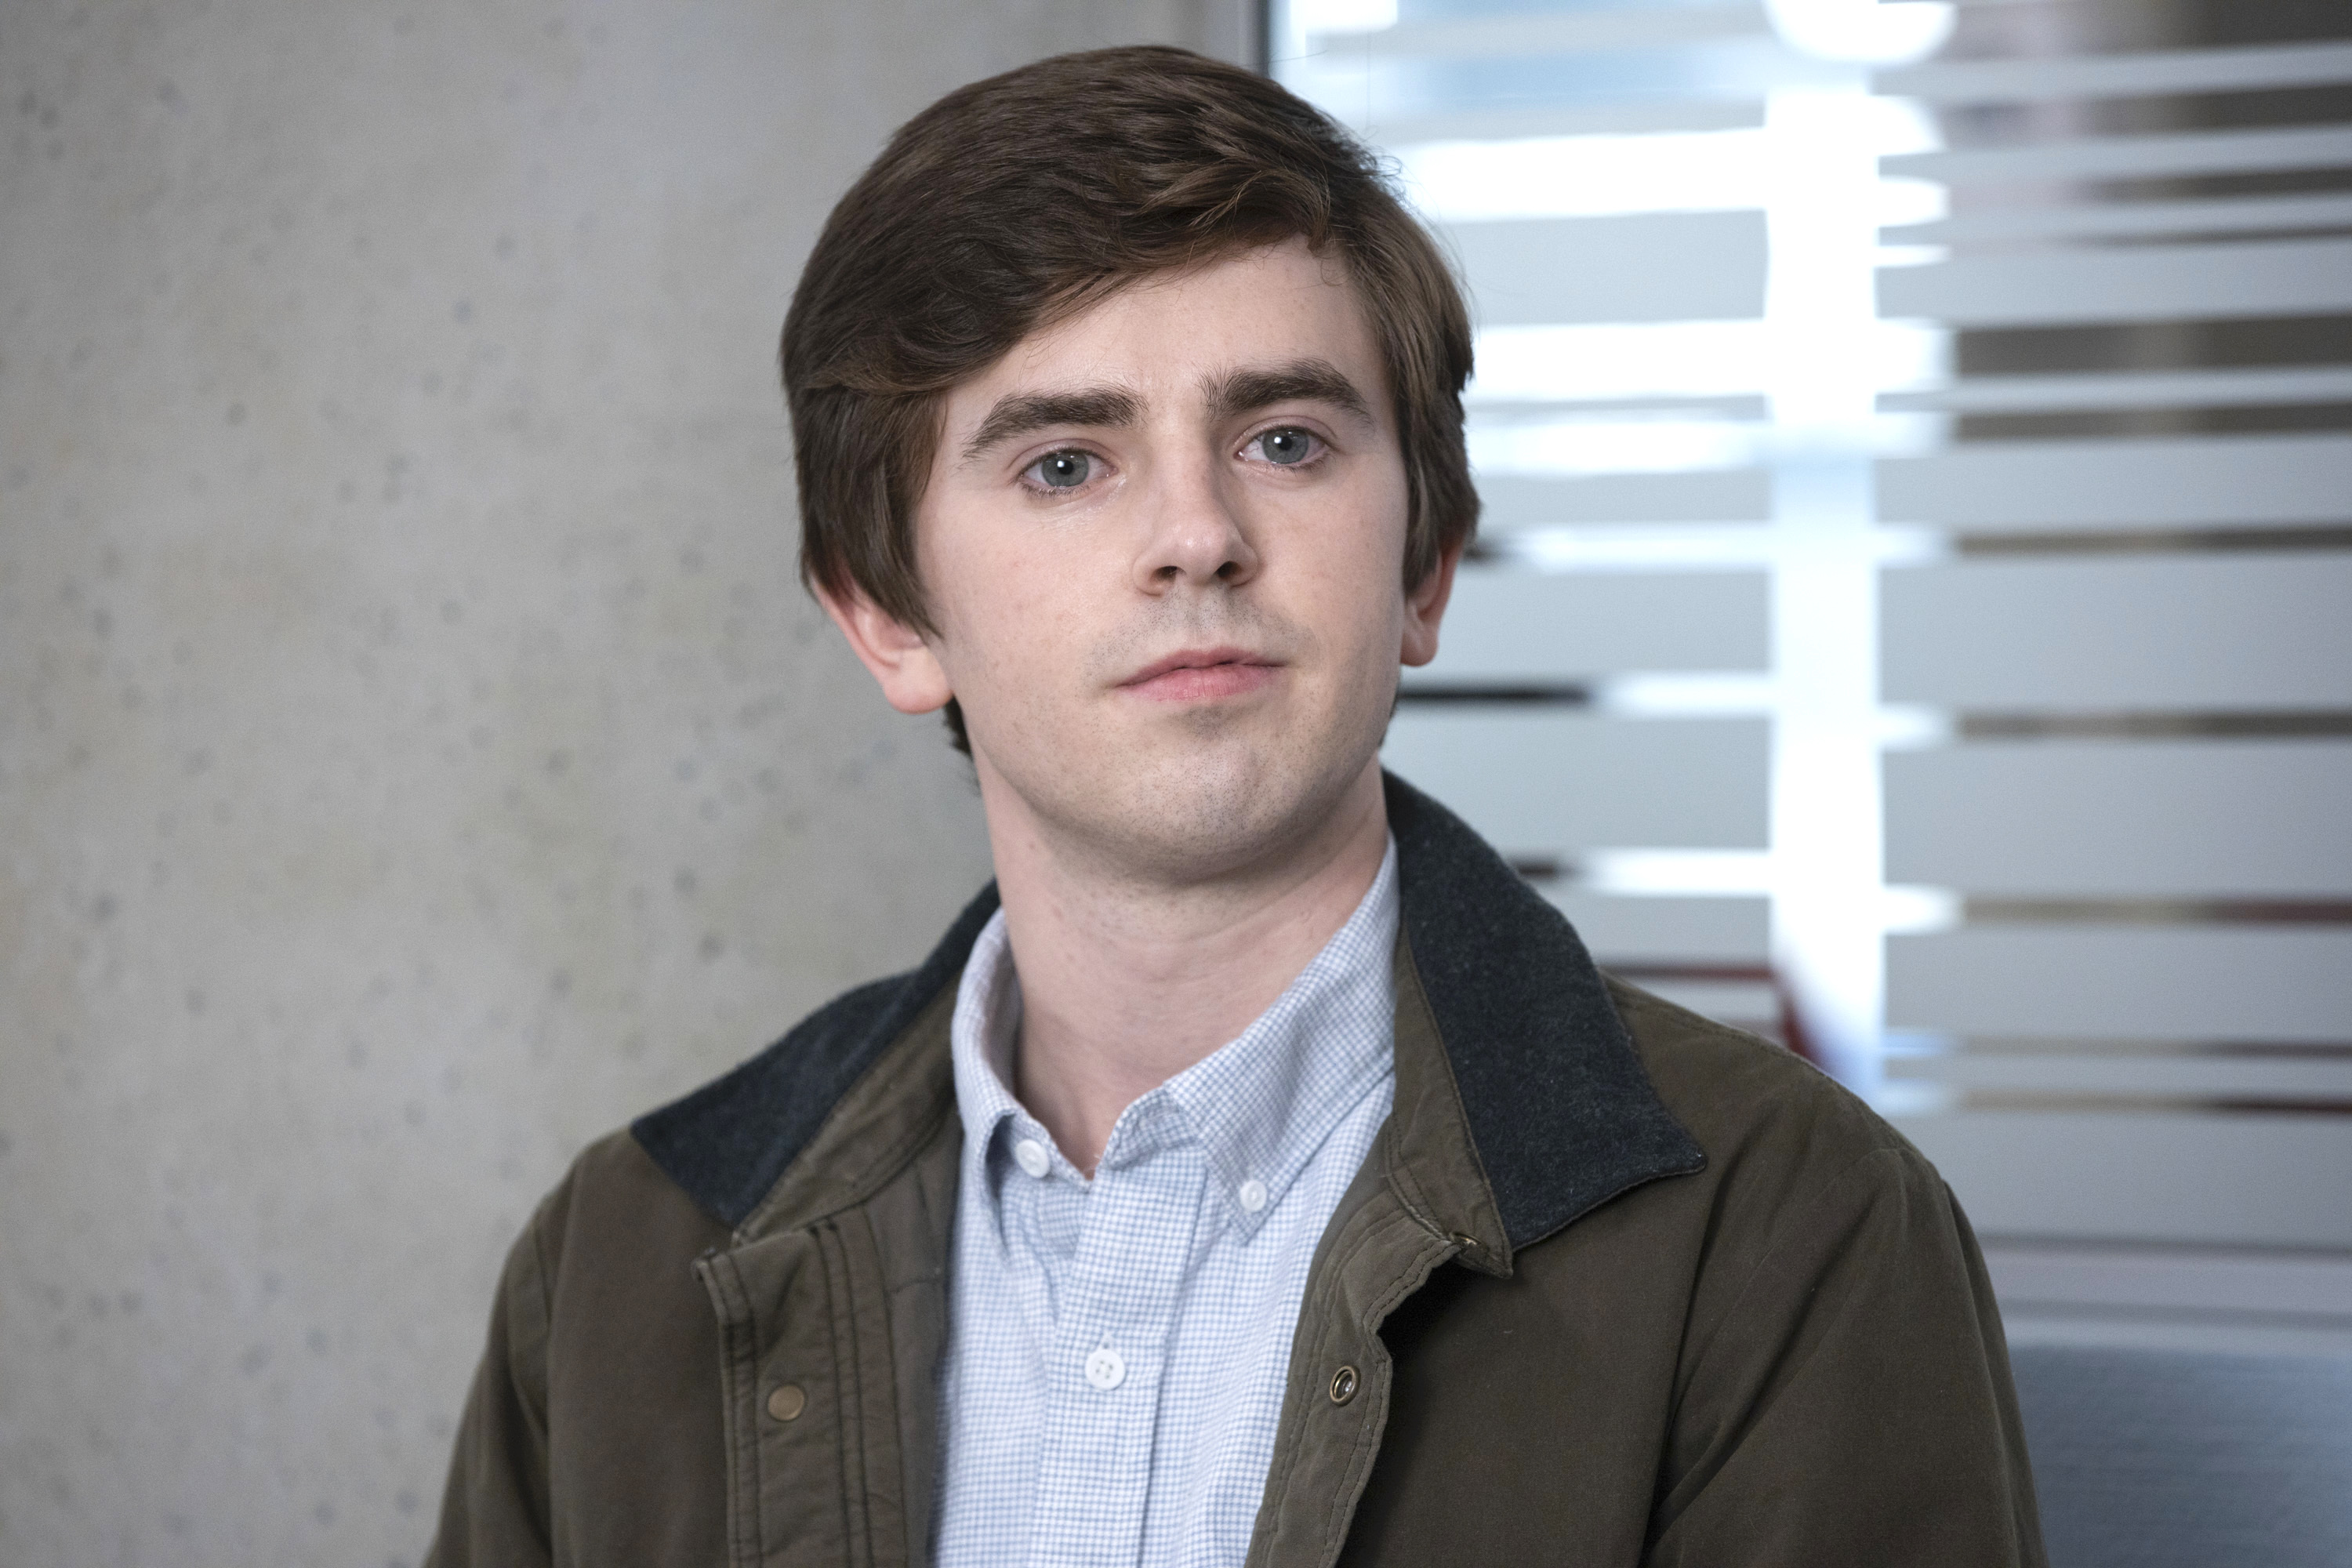 A still from the TV show 'The Good Doctor' showing the main character Dr. Shaun Murphy played by Freddie Highmore.